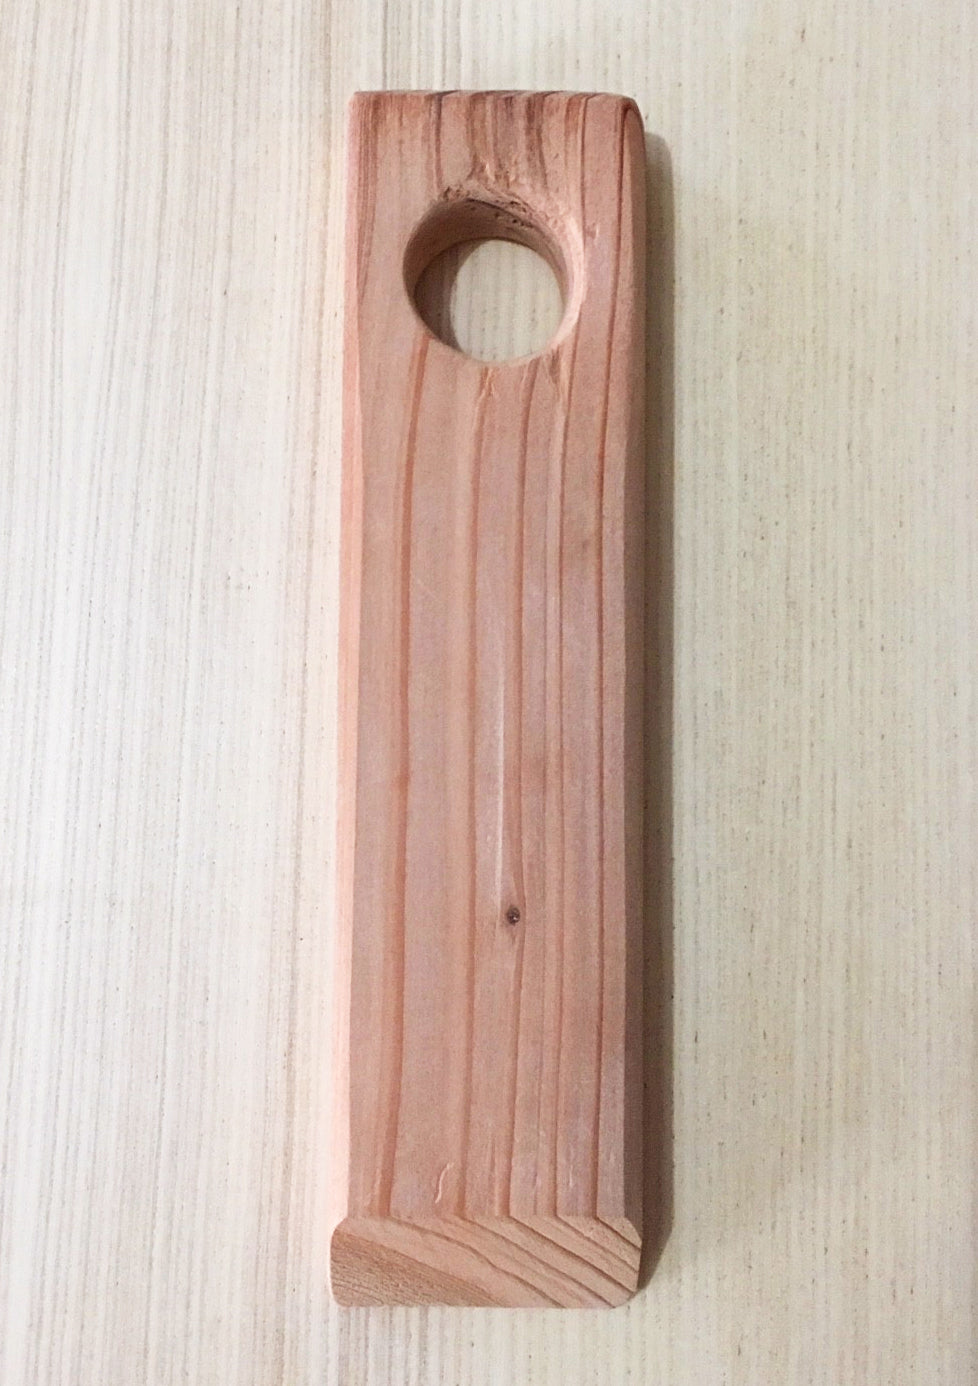 Redwood Wine Stand Holder - Best Redwood